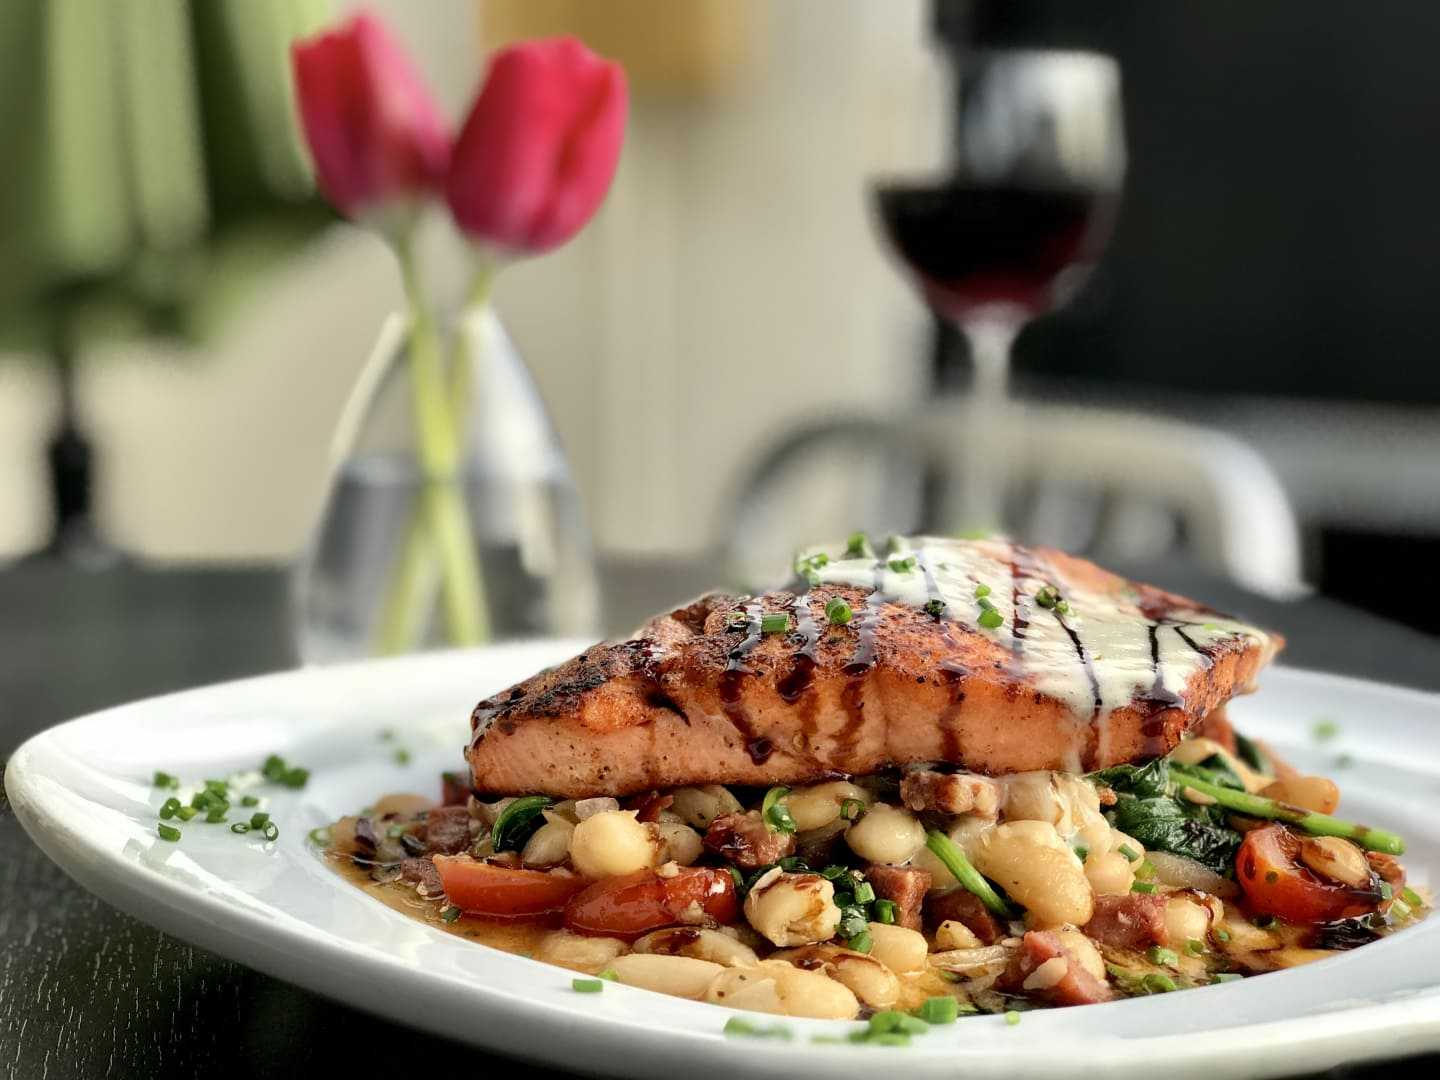 Blackened Molasses Wild Salmon w/ Spinach, White Bean, Cherry Tomato & Andouille Sausage Sauté